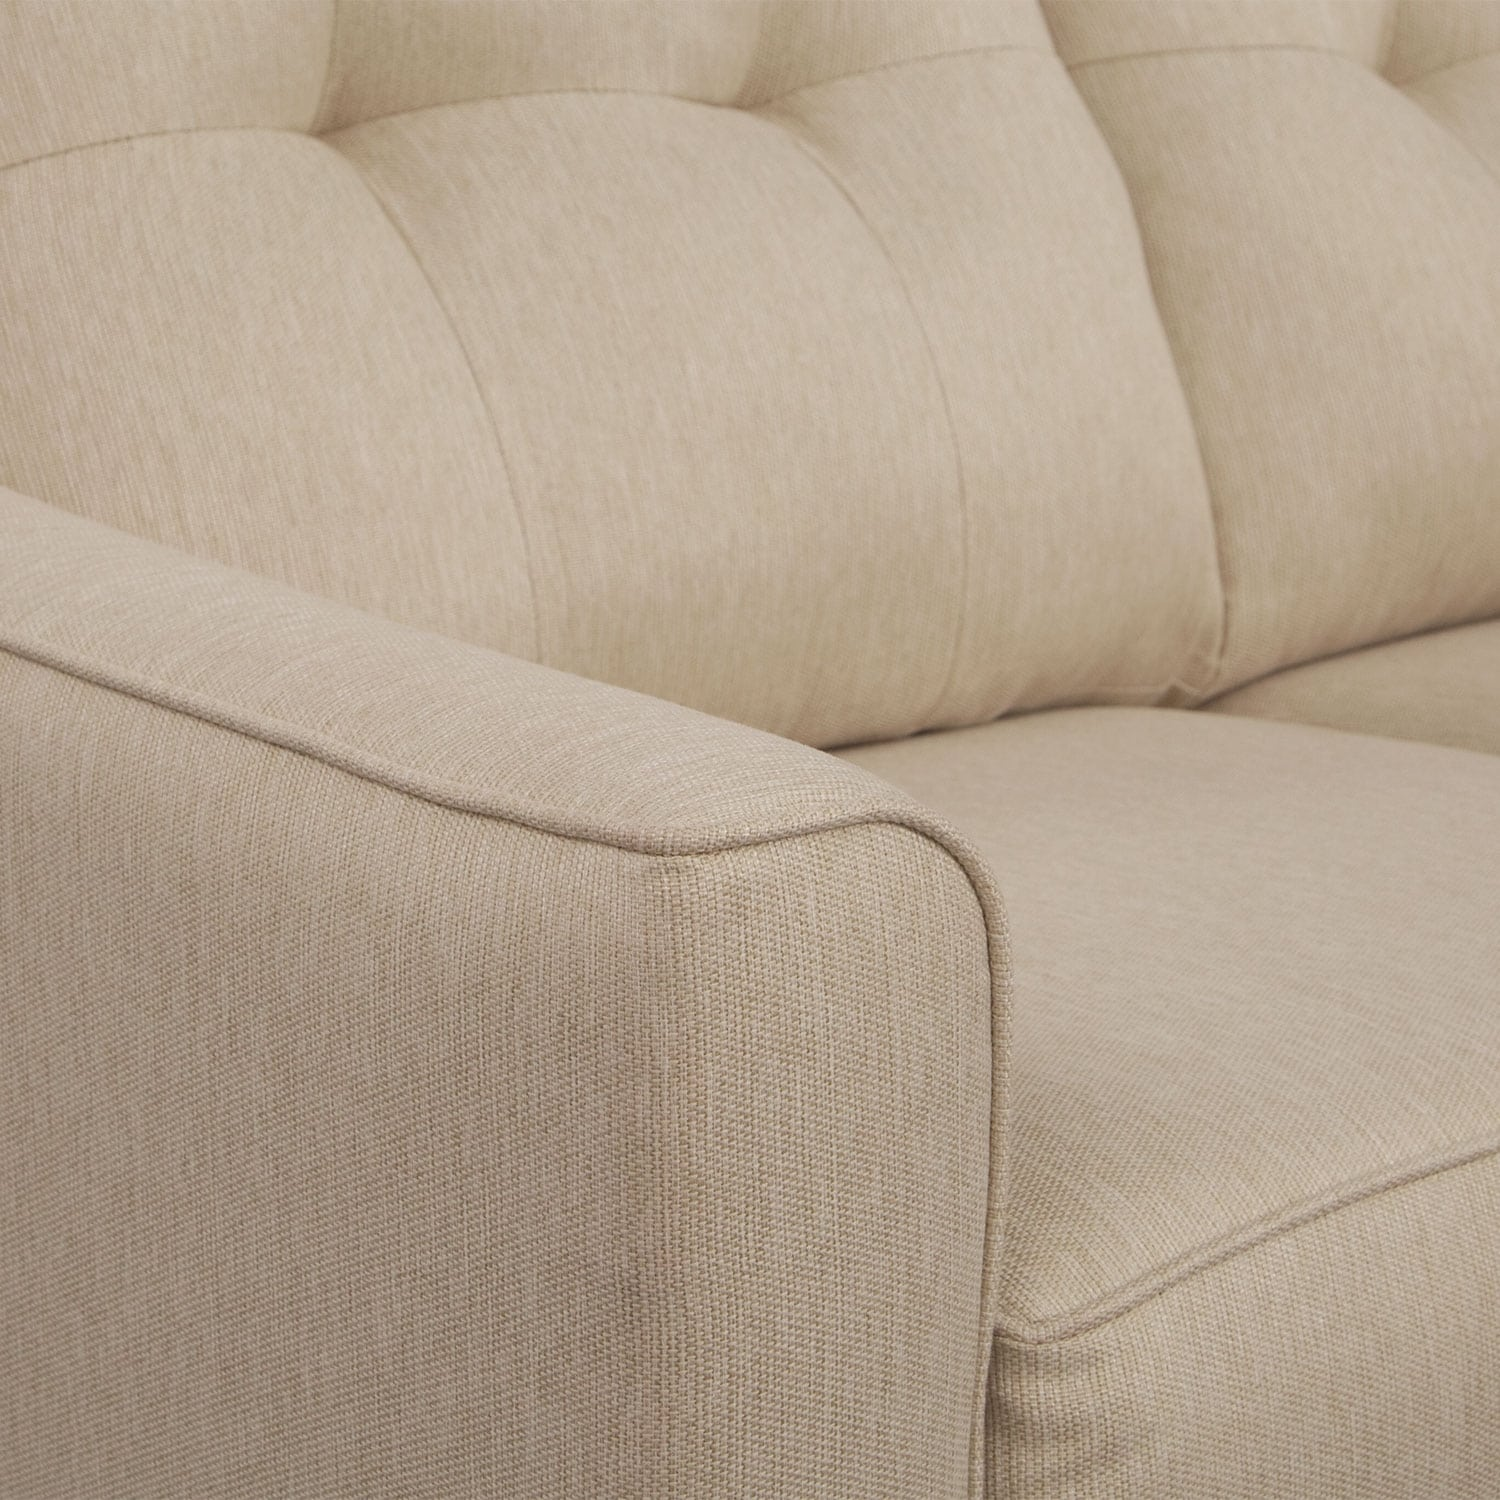 marco cream chaise sofa by factory outlet cushion refilling manchester value city furniture